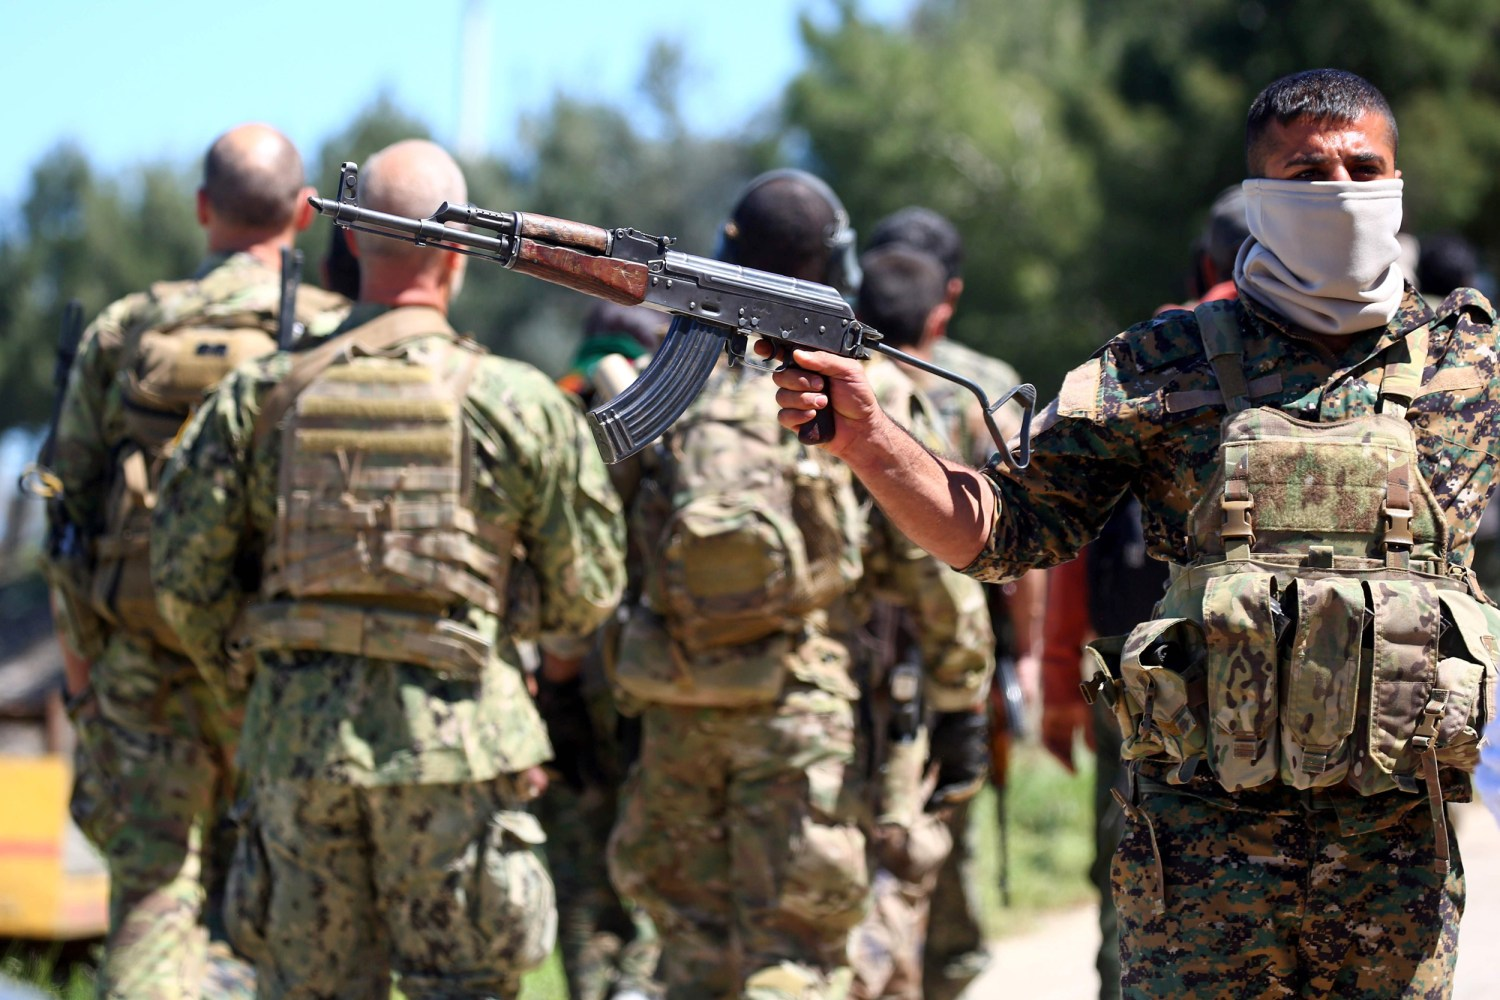 USA arming Kurdish Syria fighters unacceptable, shouts Turkey